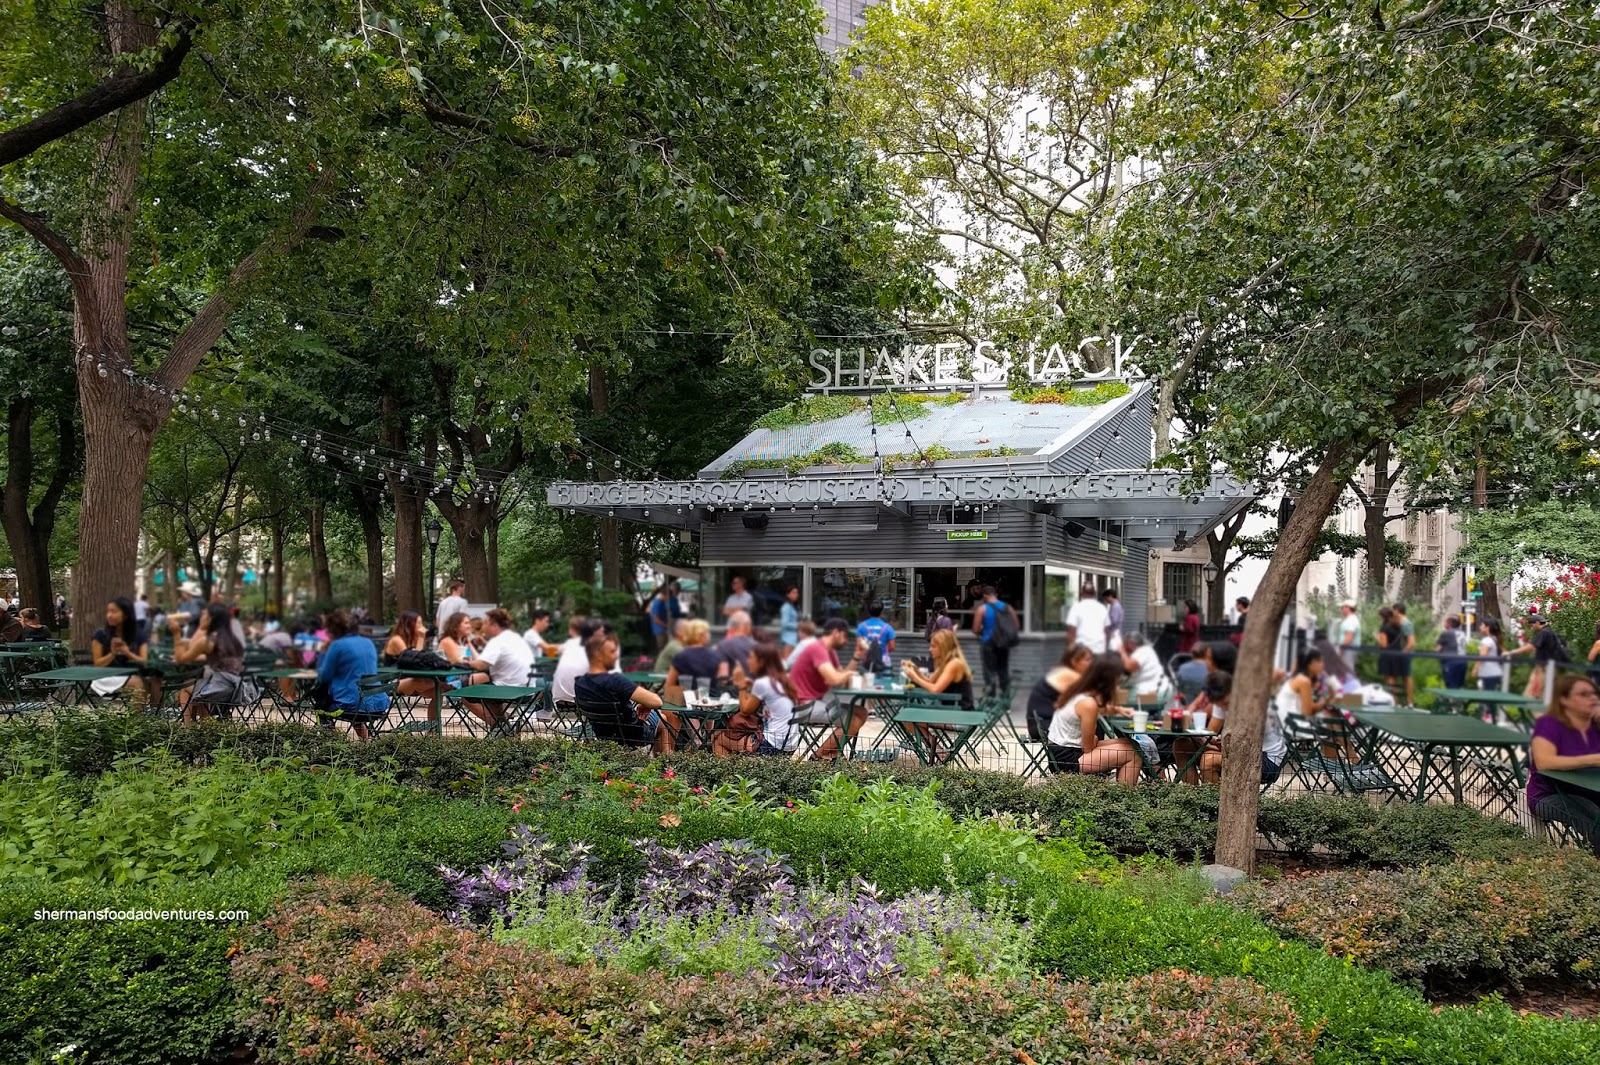 Sherman's Food Adventures: Shake Shack (Madison Park)